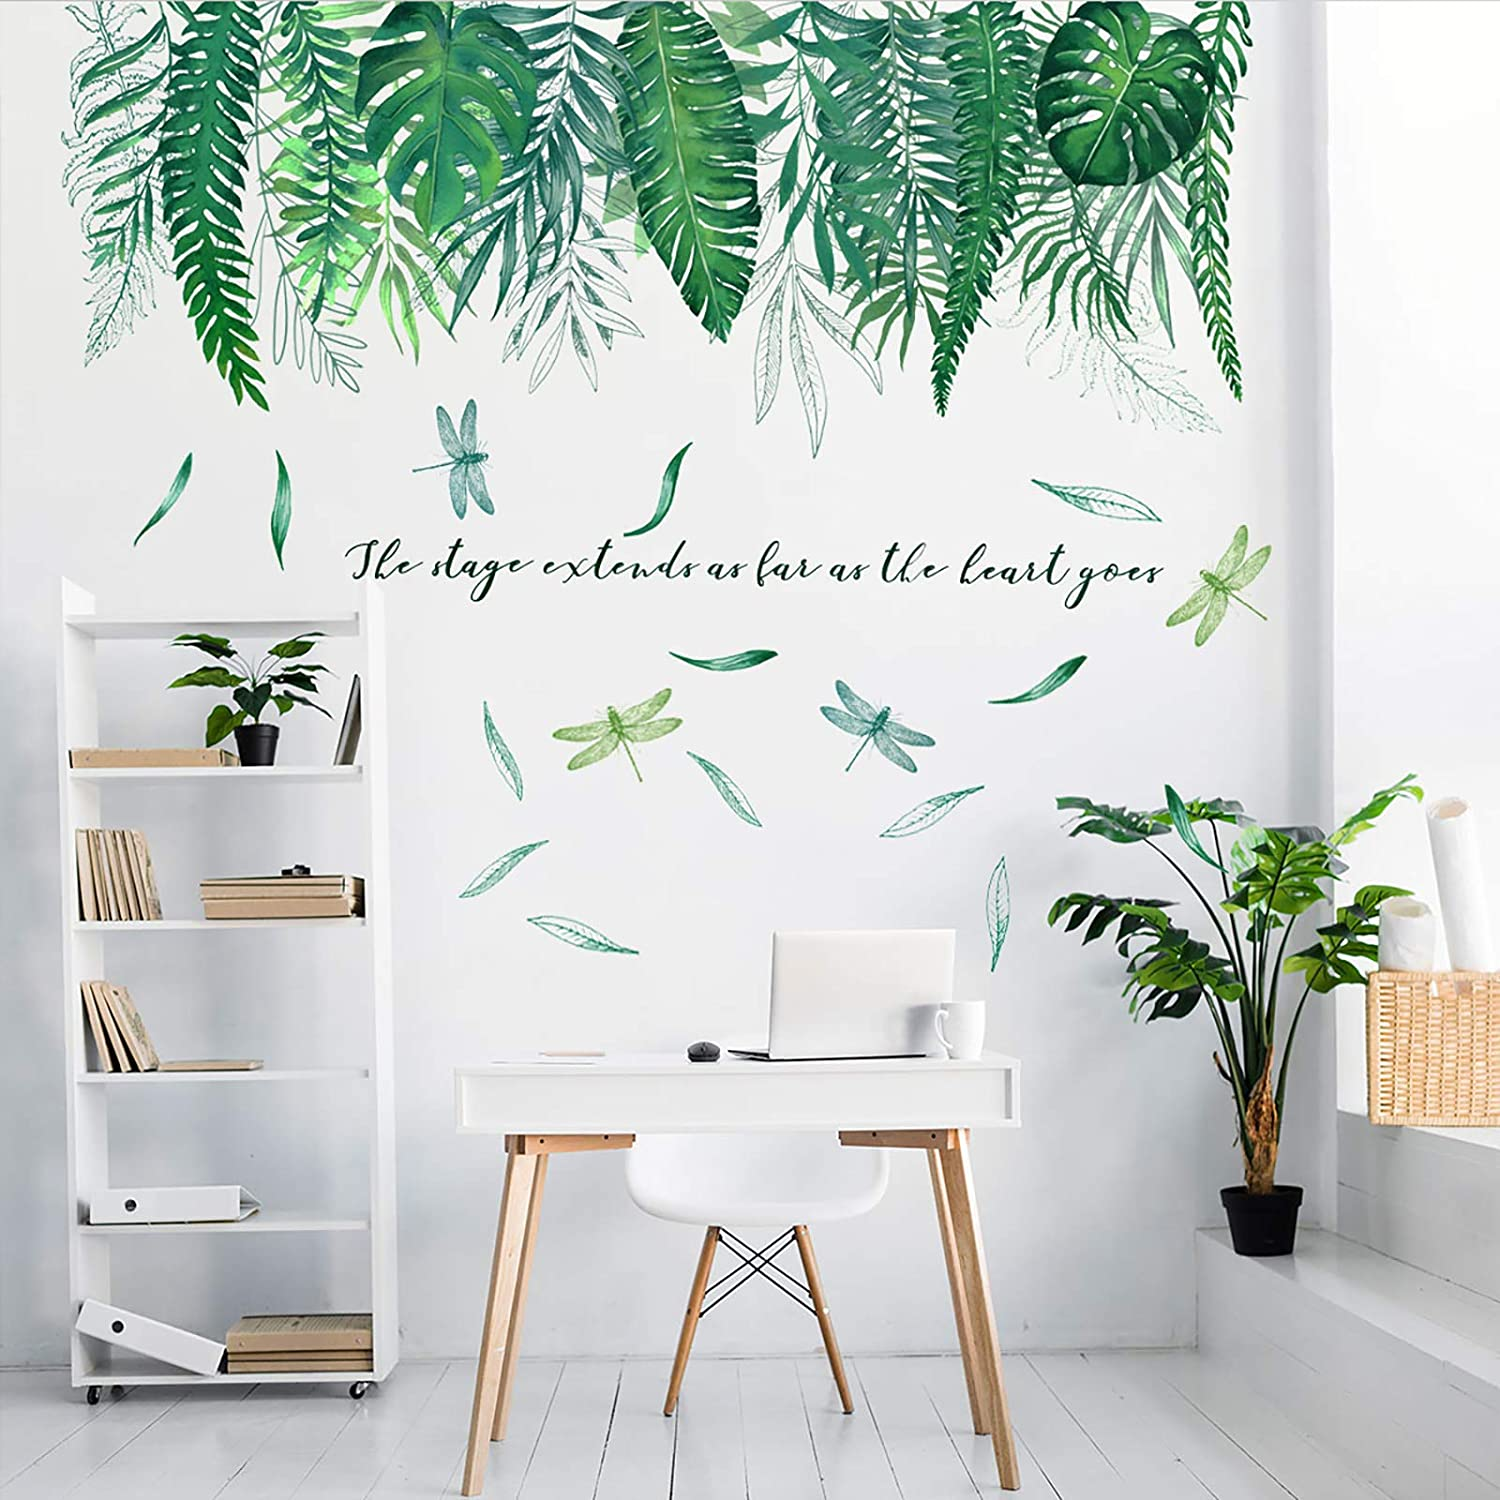 Tropical Green Plants Leaves Wall Decals, Removable PVC Dragonfly Peel and Stick Wall Stickers, Creative Mural Decoration for Decor Kids Nursery Baby Home Living Room Bedroom Kitchen (39x29.5in)